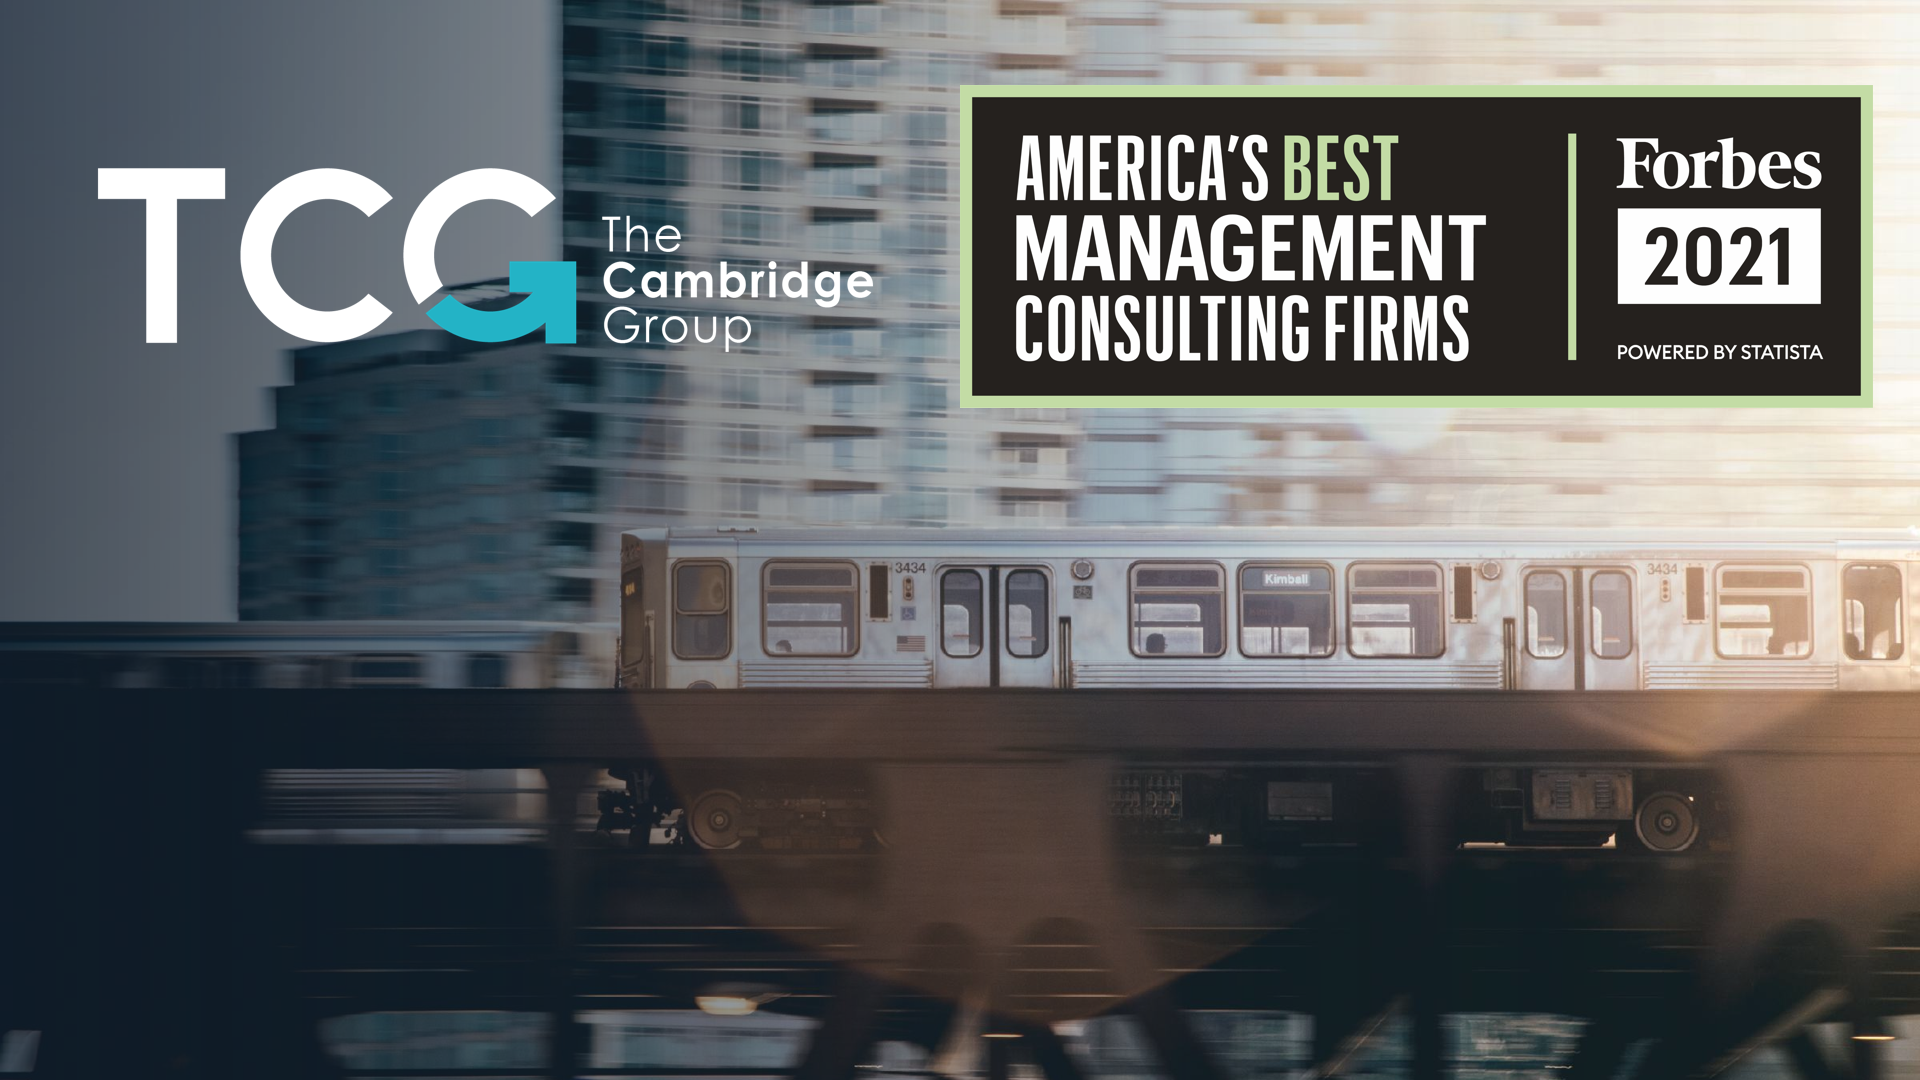 Forbes names TCG one of America's Best Consulting Firms for the 3rd straight year thumbnail